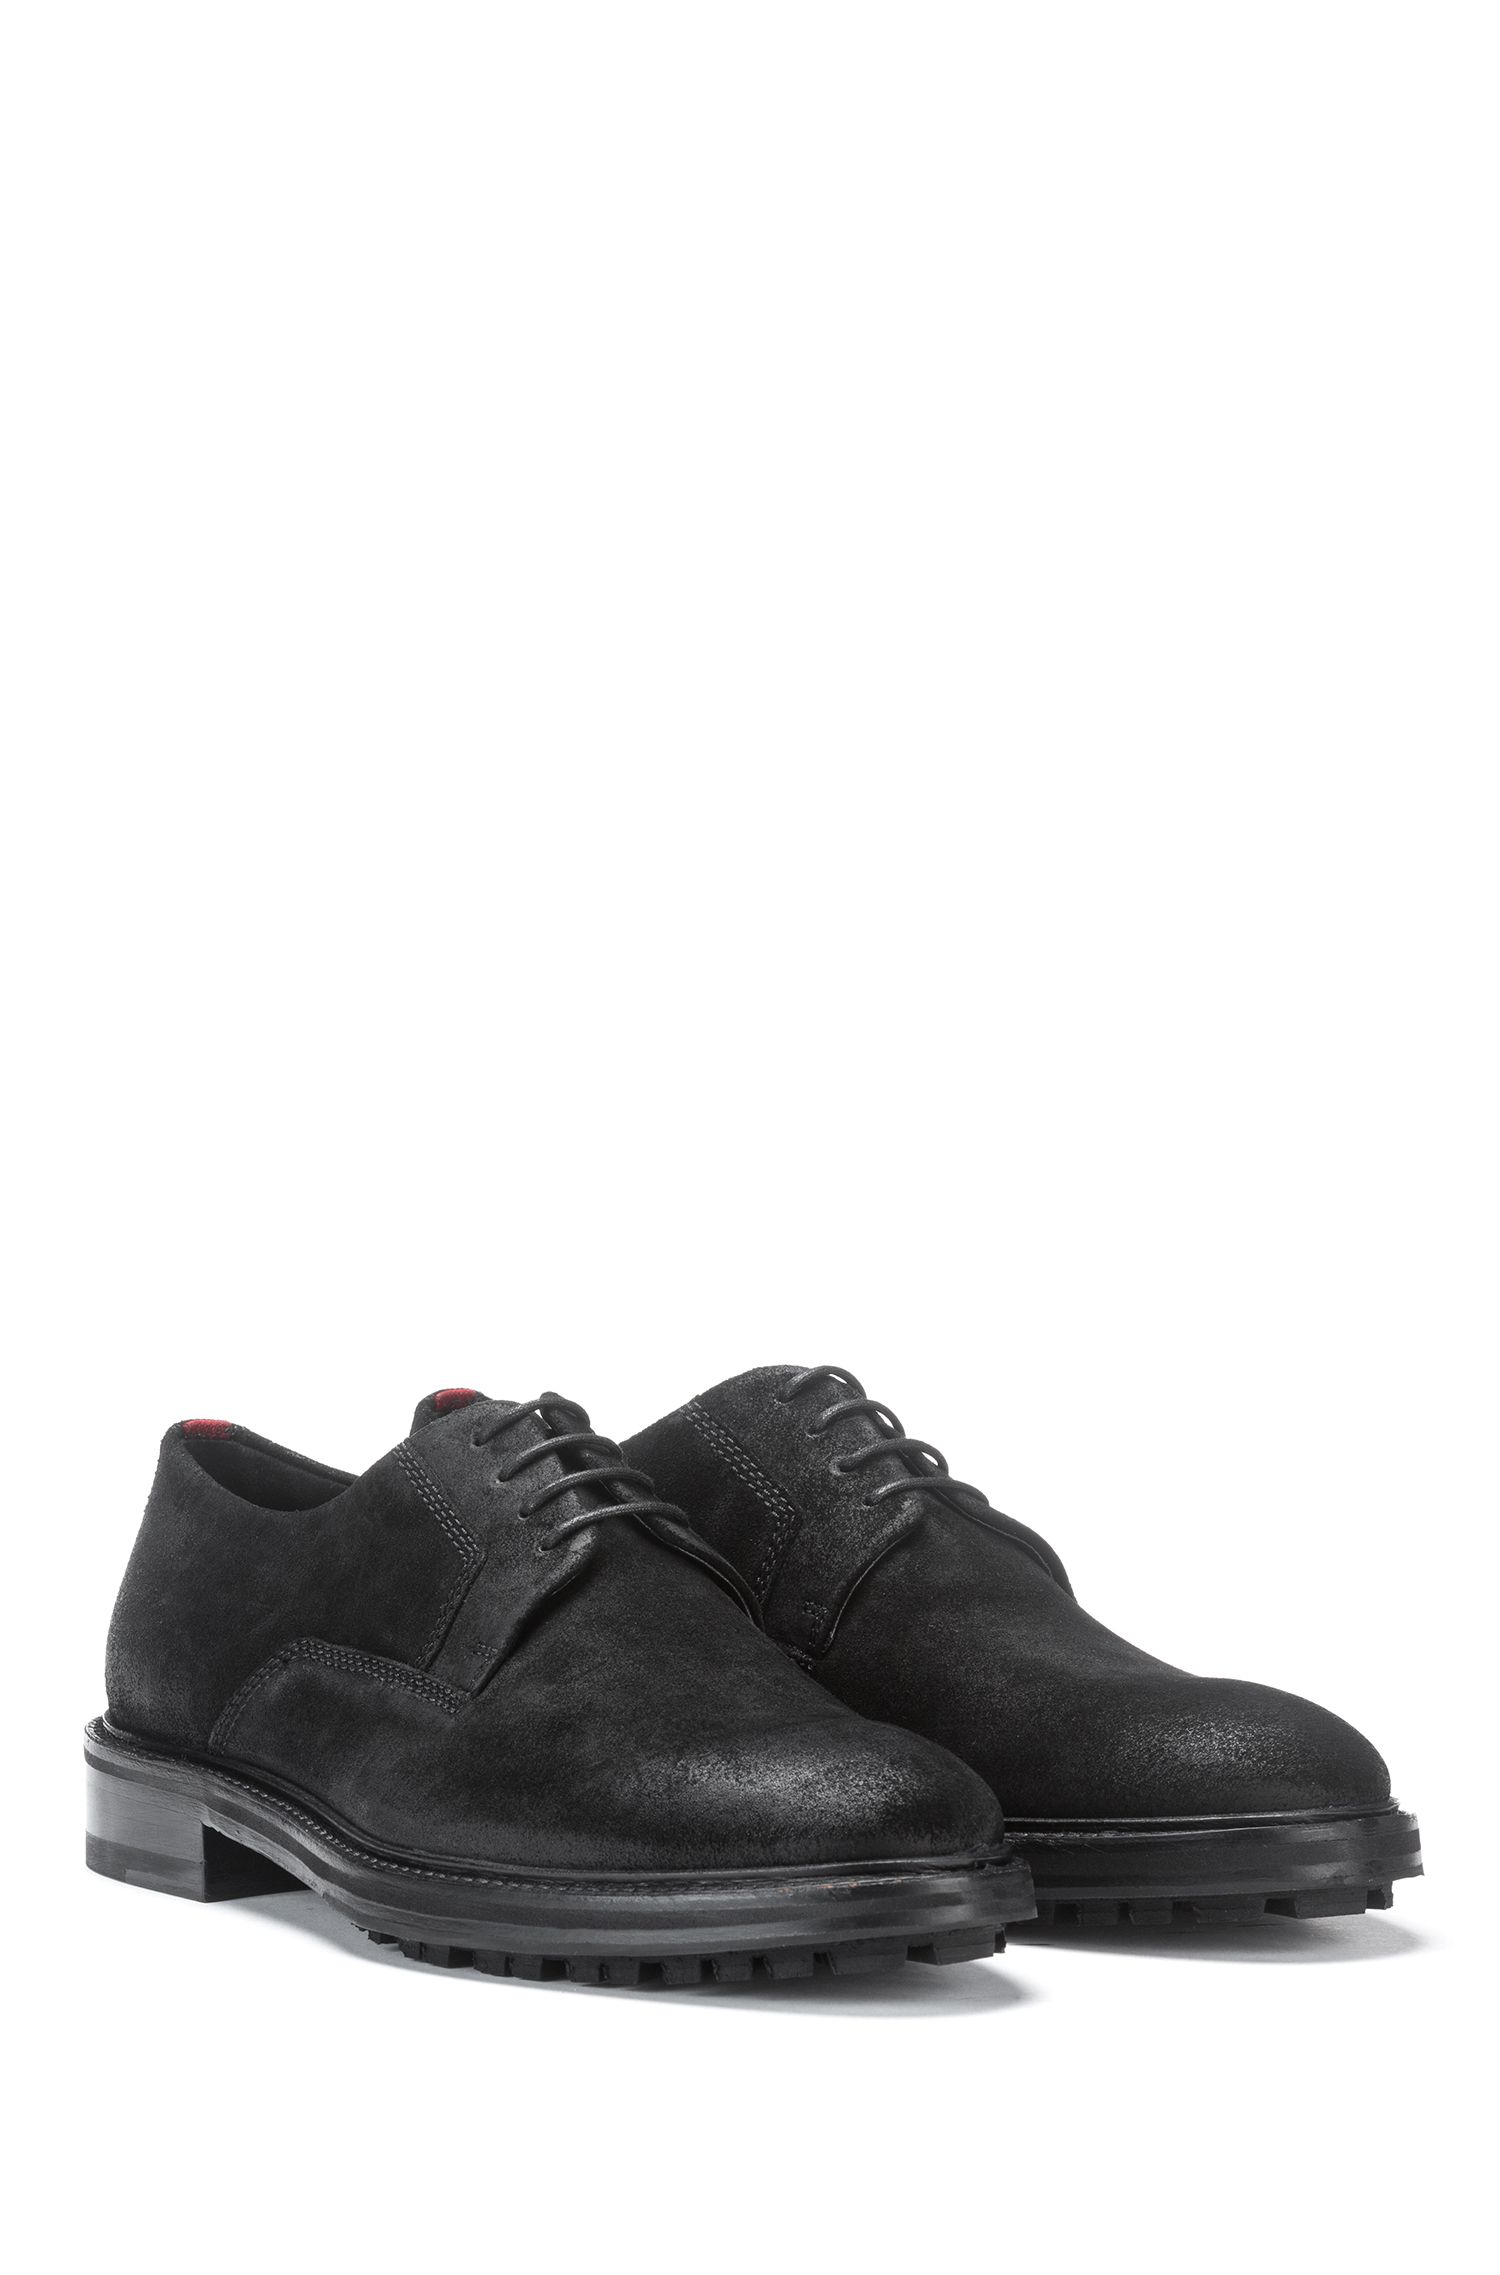 Derby shoes in waxed suede leather with lug sole, Black